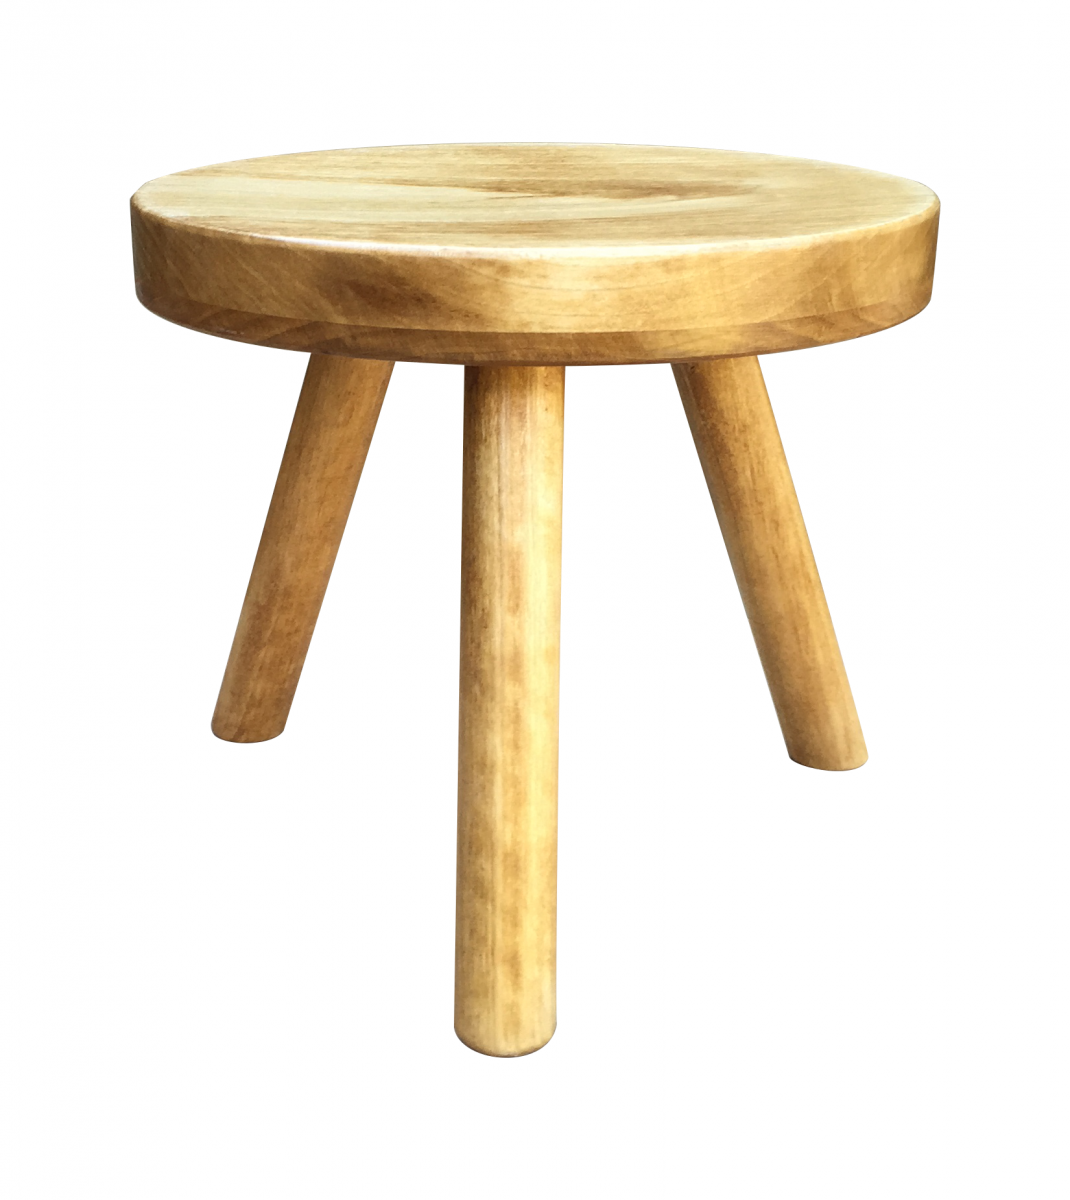 Small Wood Table And Chairs: Small Wood Stool Wooden Kids Chair Plant Stand Tea Table